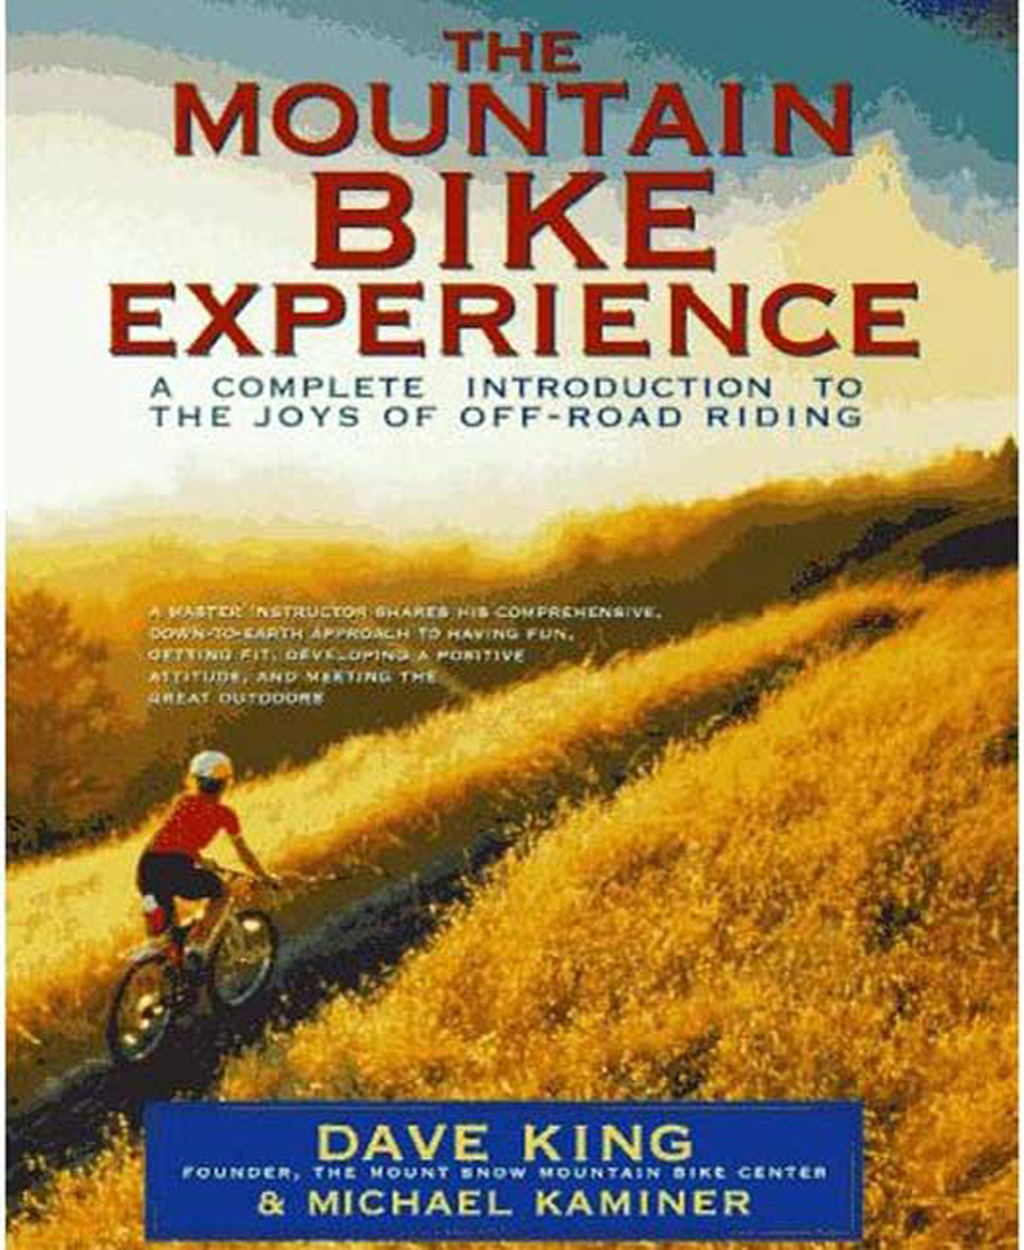 The Mountain Bike Experience